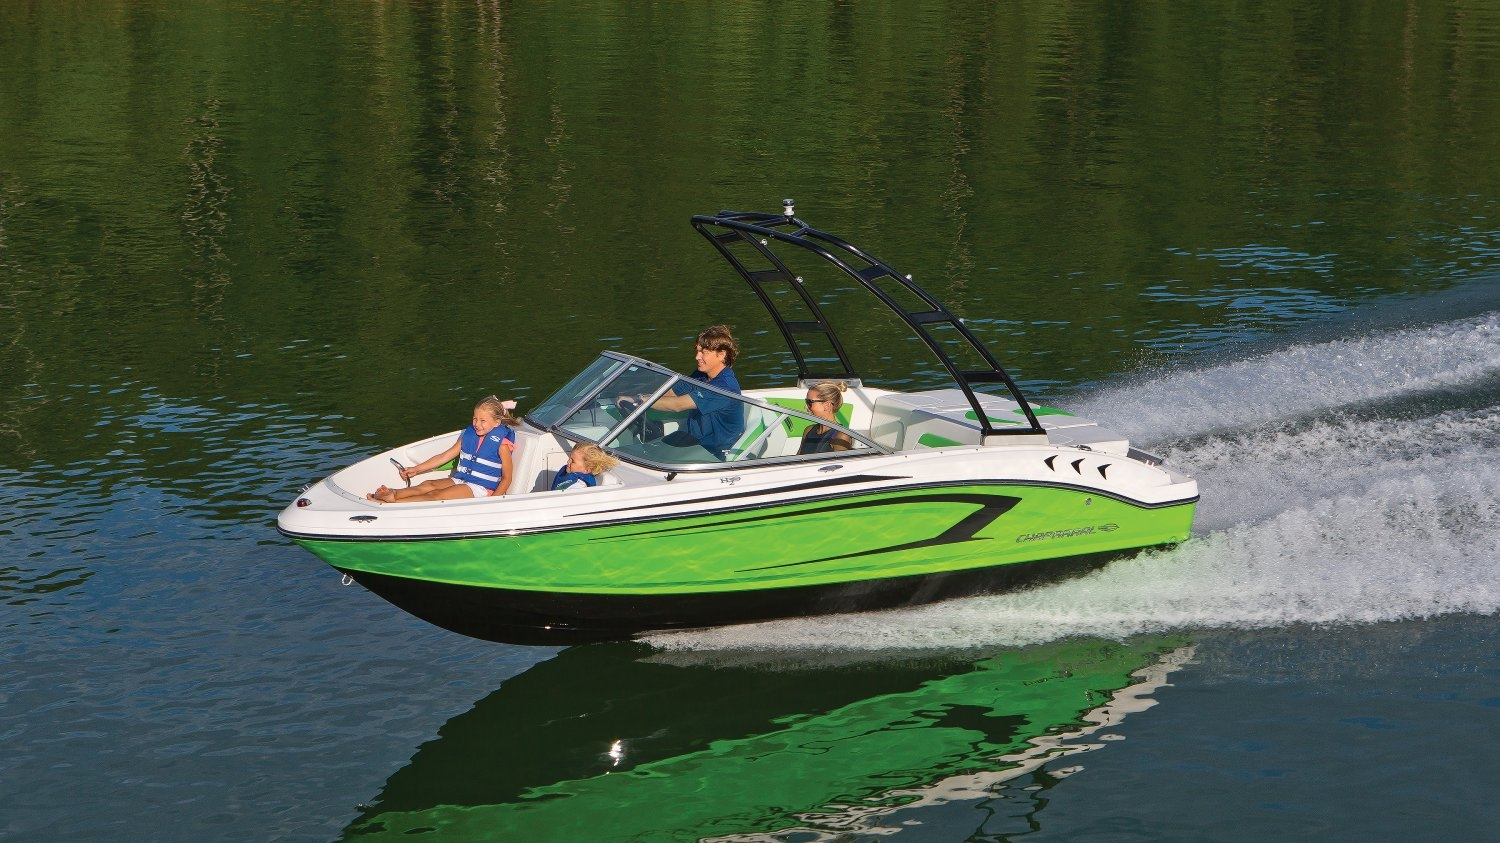 2018 Chaparral 19 H2o Top Speed